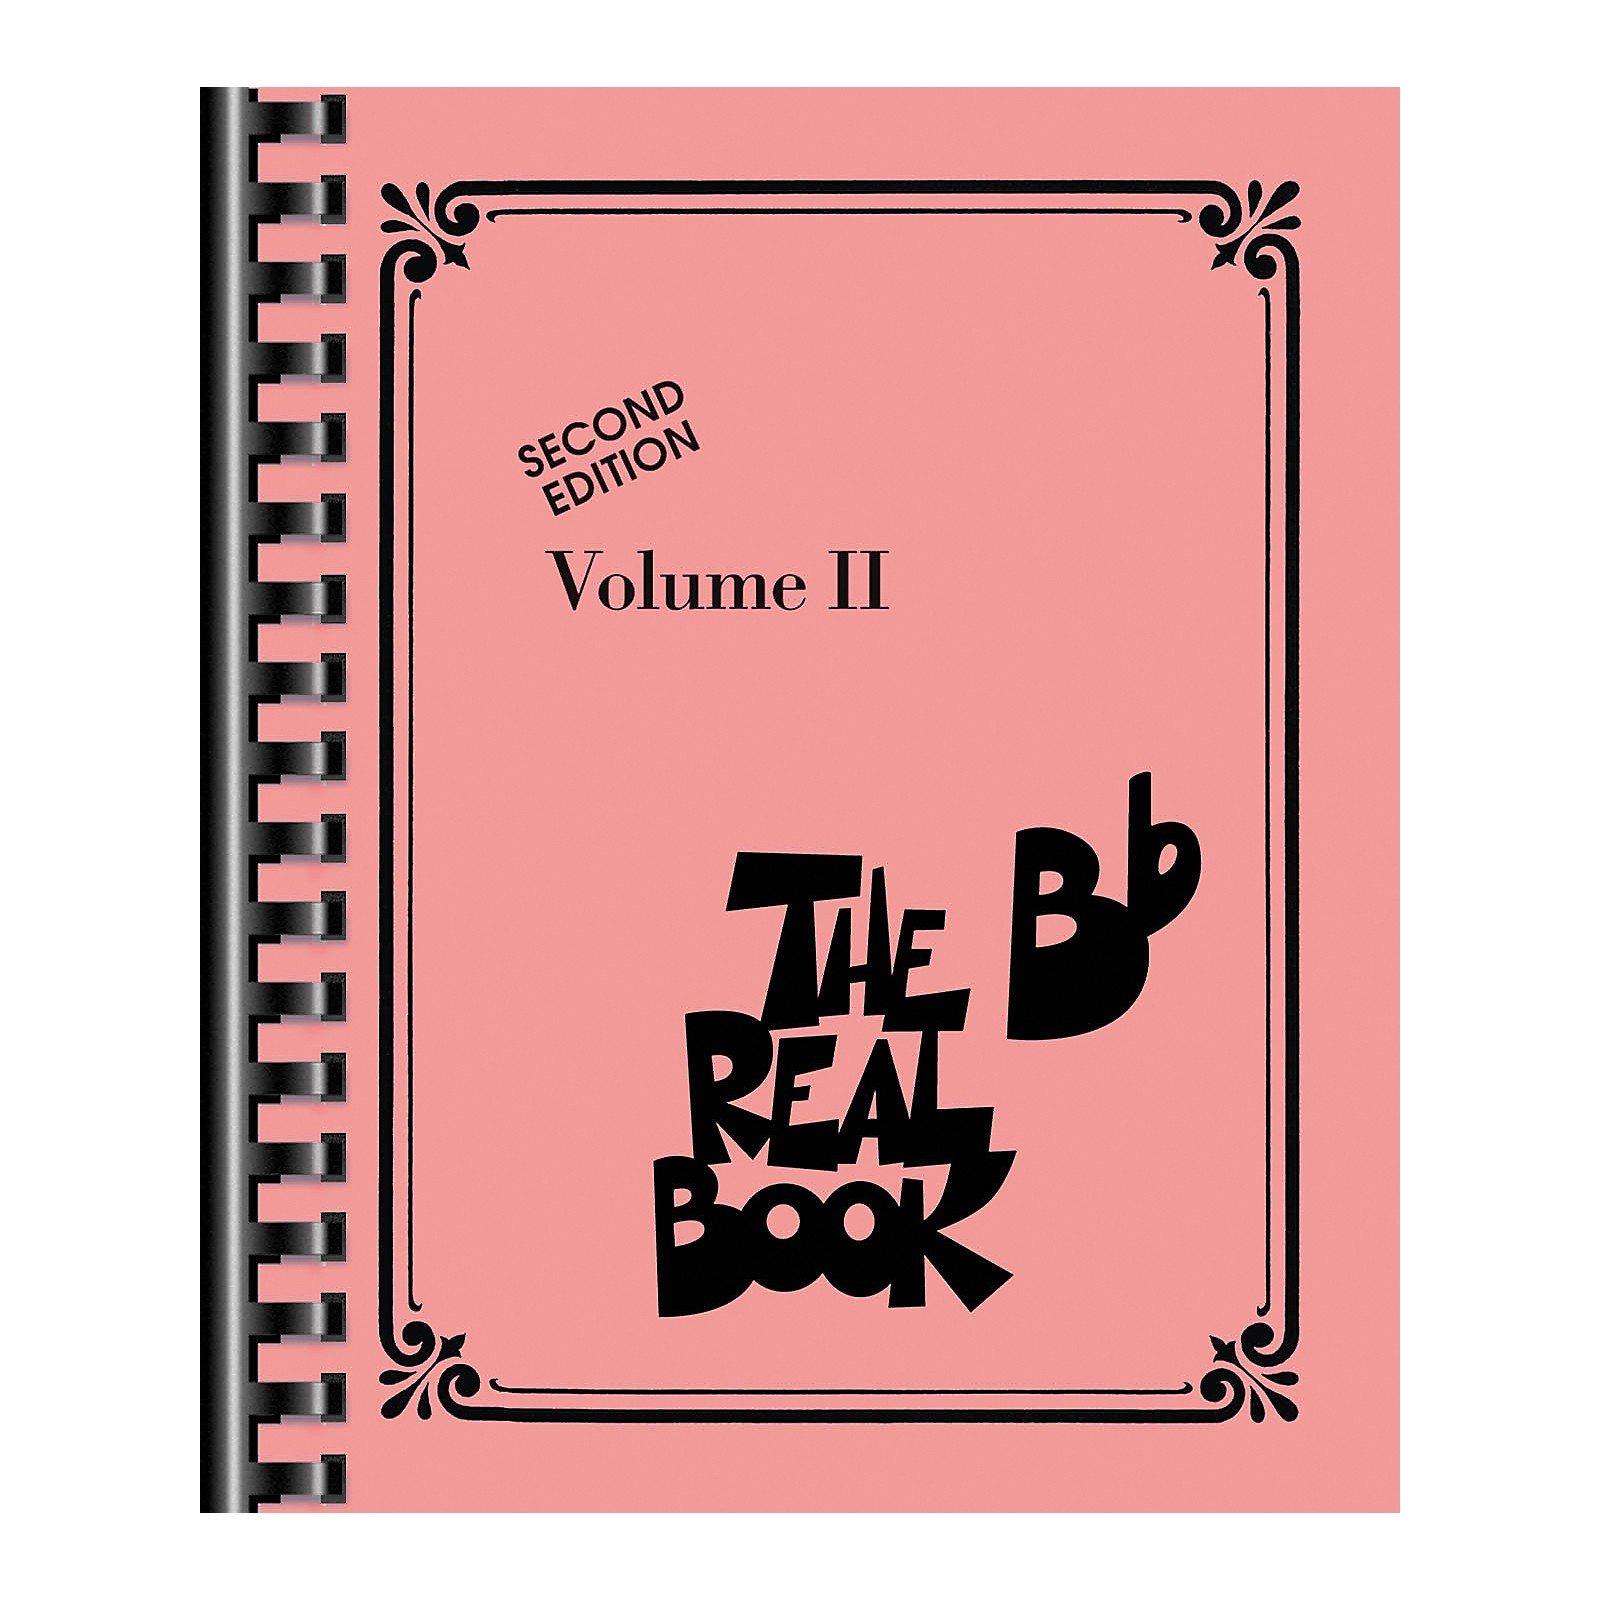 Hal Leonard The Real Book Bb Volume II - Second Edition